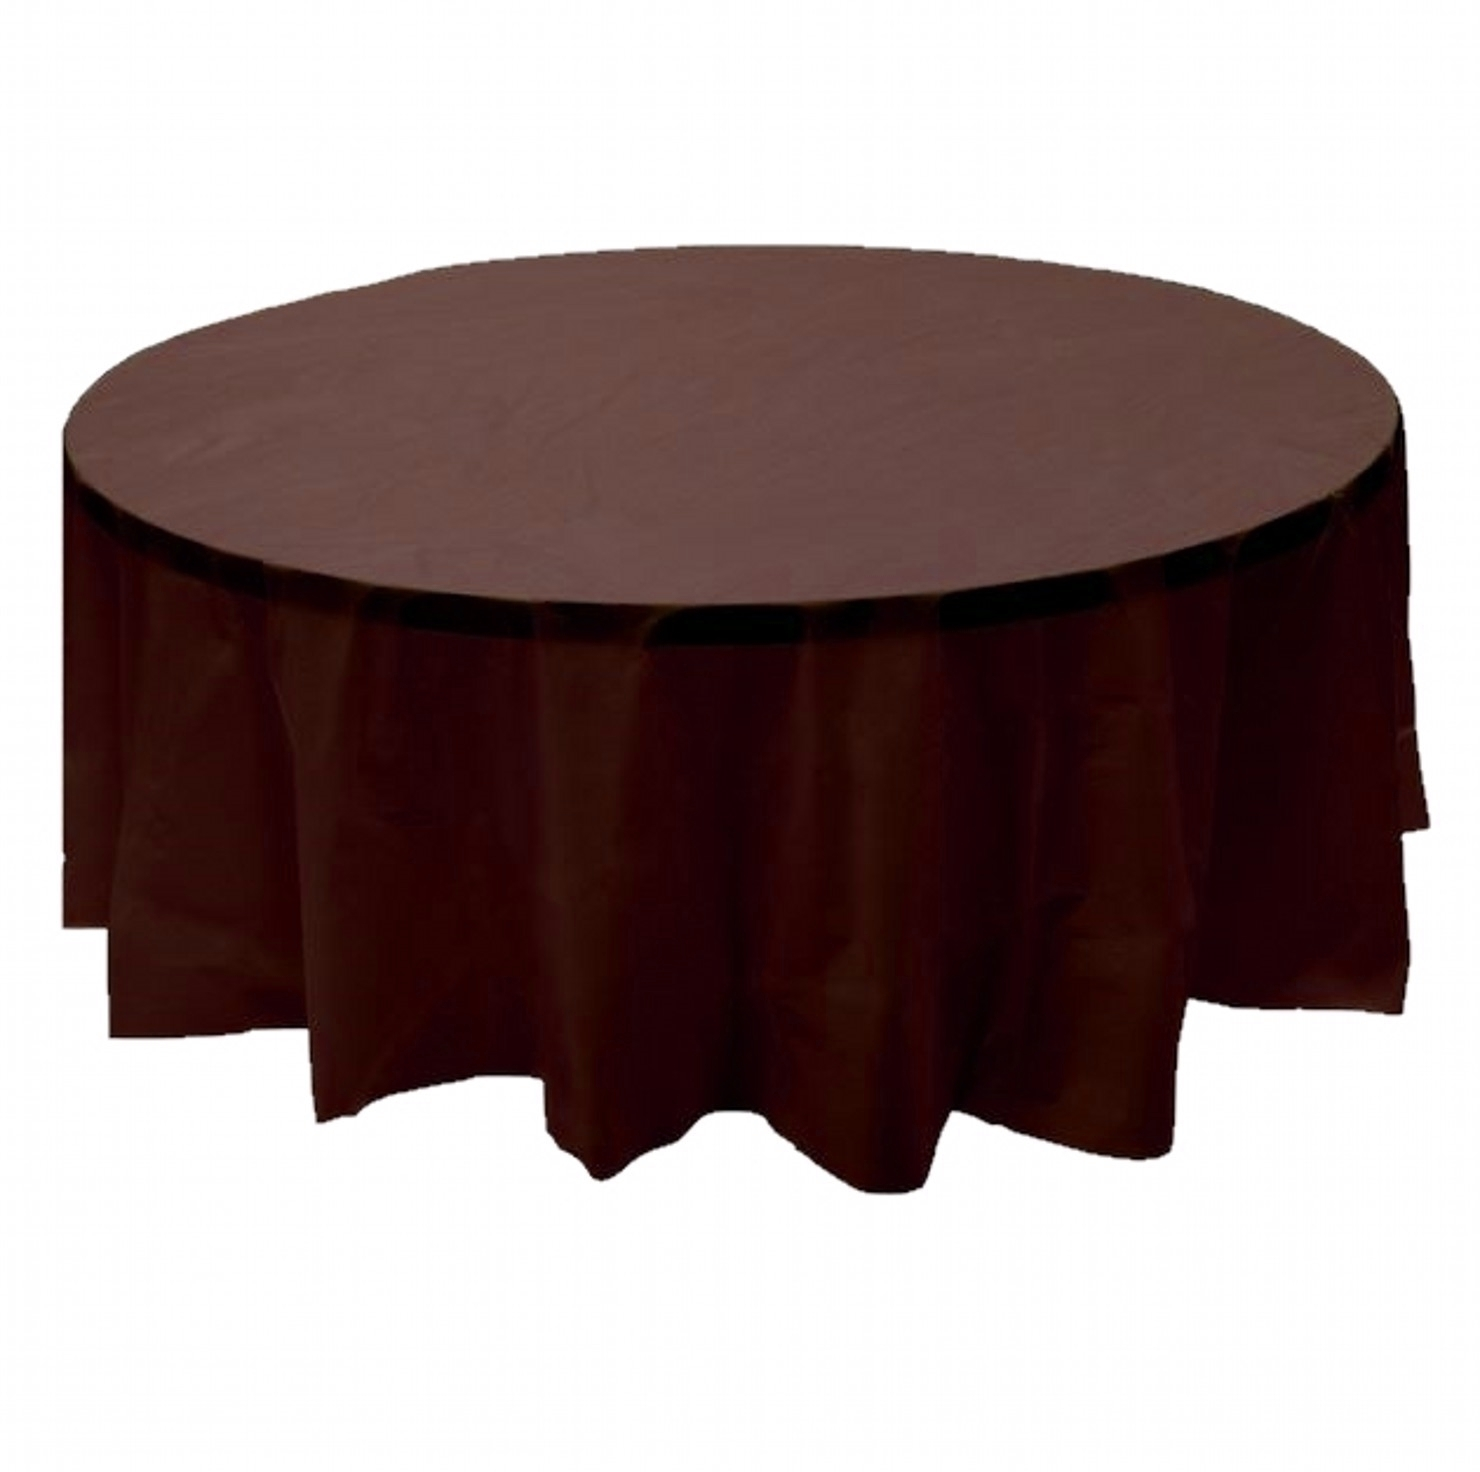 "2 BROWN Plastic round tablecloths 84"" diameter table cover"